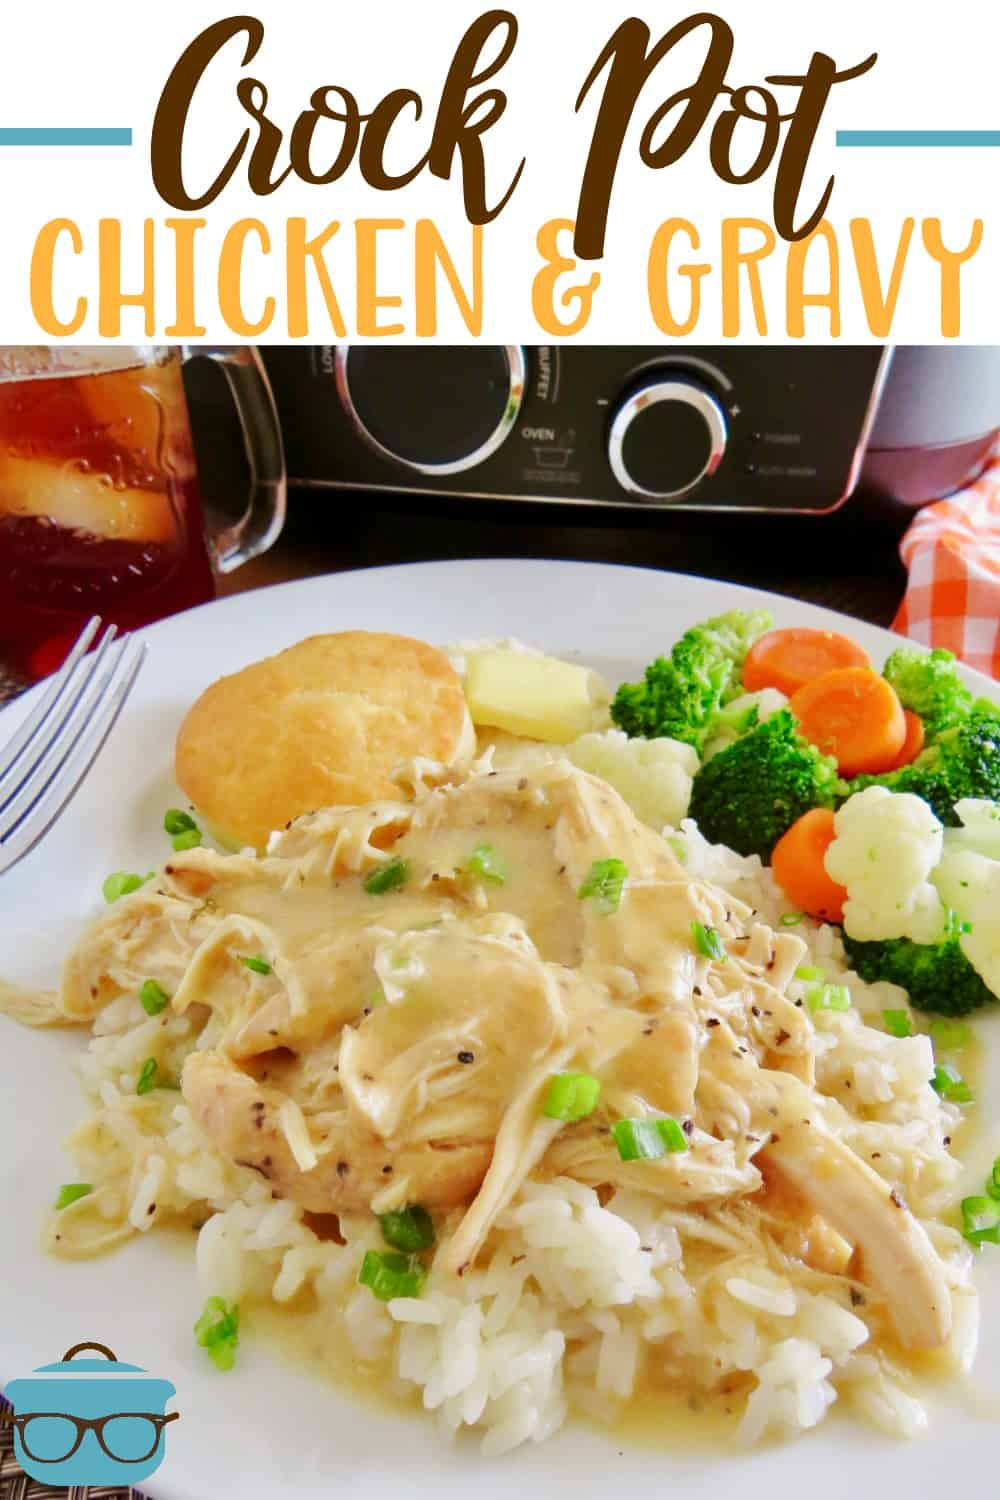 Crock Pot Chicken And Gravy Video The Country Cook